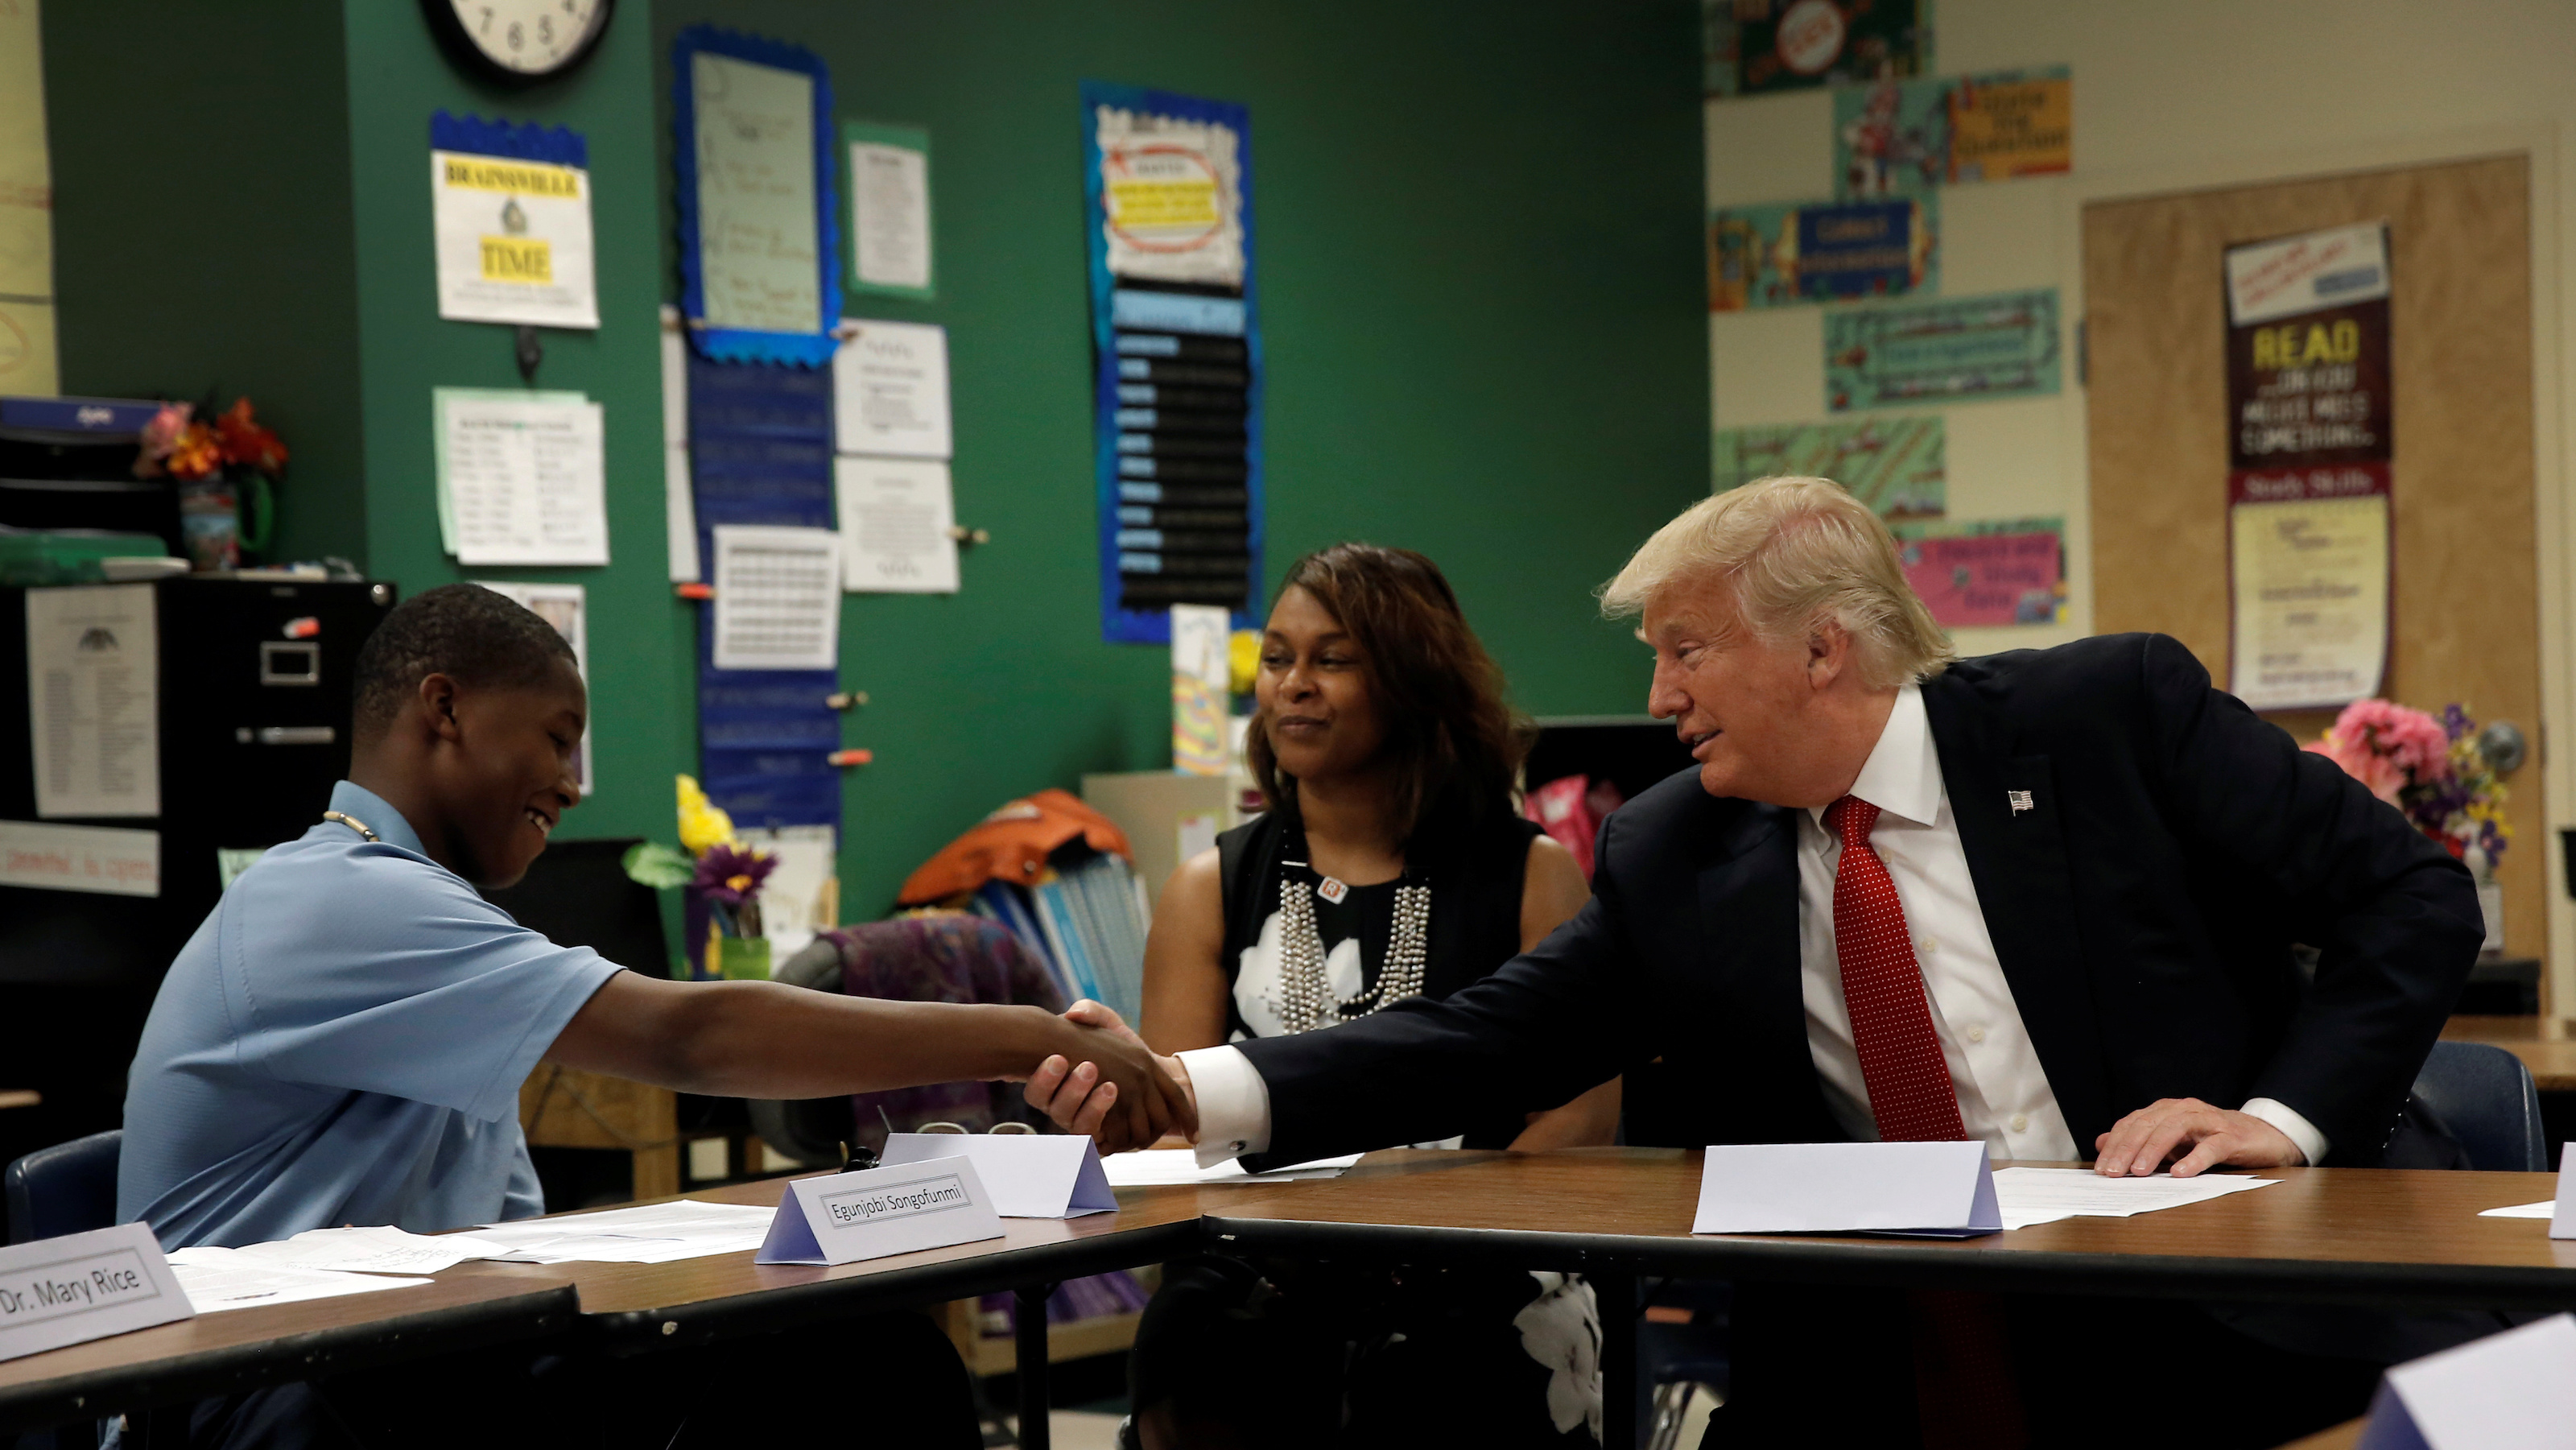 Republican presidential nominee Donald Trump shakes hands with 12 year old student Egunjobi Songofunmi during a campaign visit to Cleveland Arts and Social Sciences Academy in Cleveland, Ohio, U.S., September 8, 2016.  REUTERS/Mike Segar - RTX2OPK7